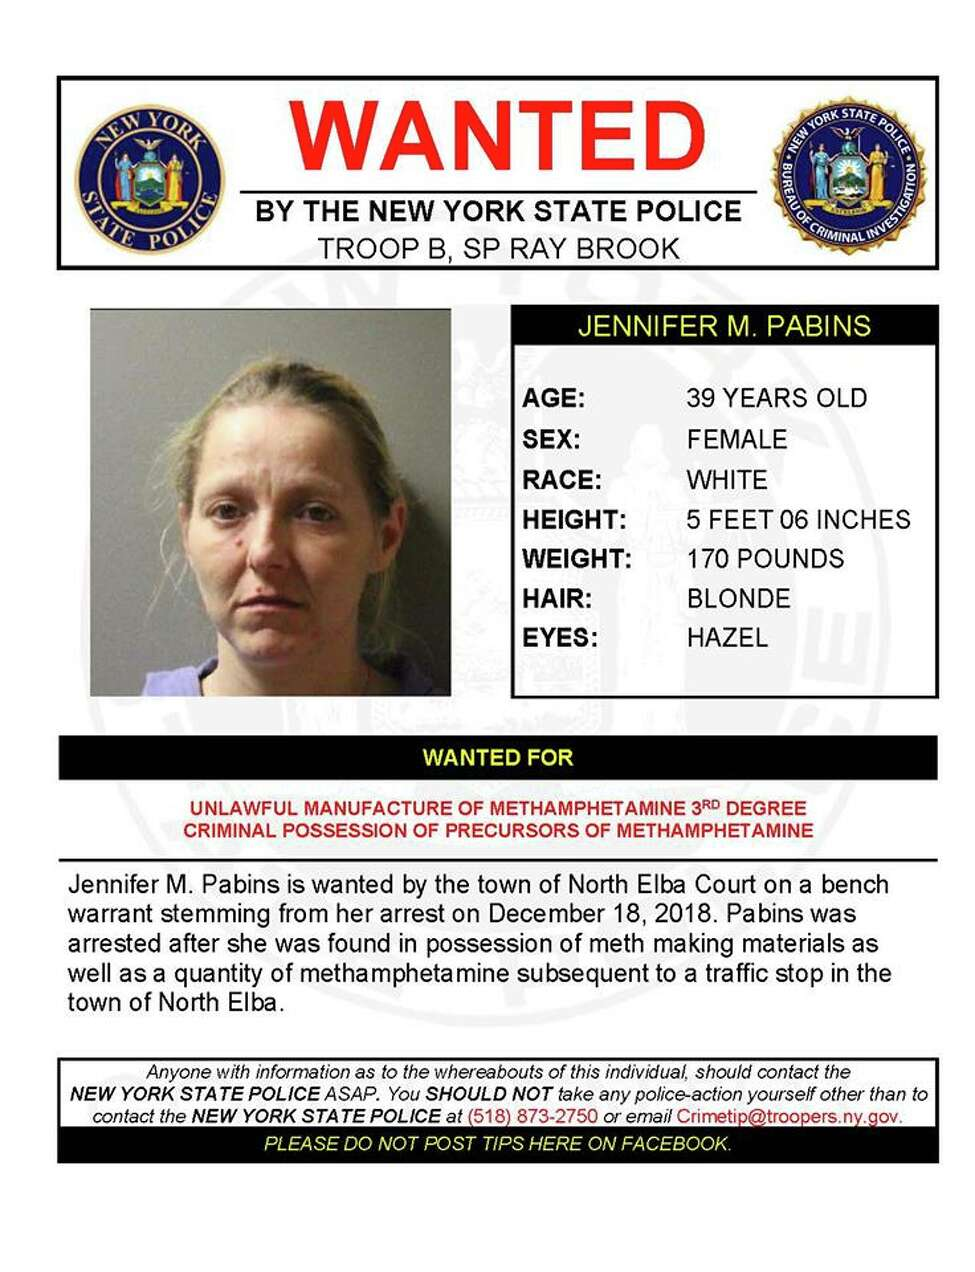 Jennifer M. Pabins, 39, is wanted by the town of North Elba Court in Essex County on a bench warrant stemming from her arrest on Dec. 18, 2018. Police said she was in possession of methamphetamine-making materials as well as a quantity of methamphetamine during a traffic stop in the town of North Elba. She was charged with unlawful manufacture of methamphetamine and criminal possession of precursors of methamphetamine.